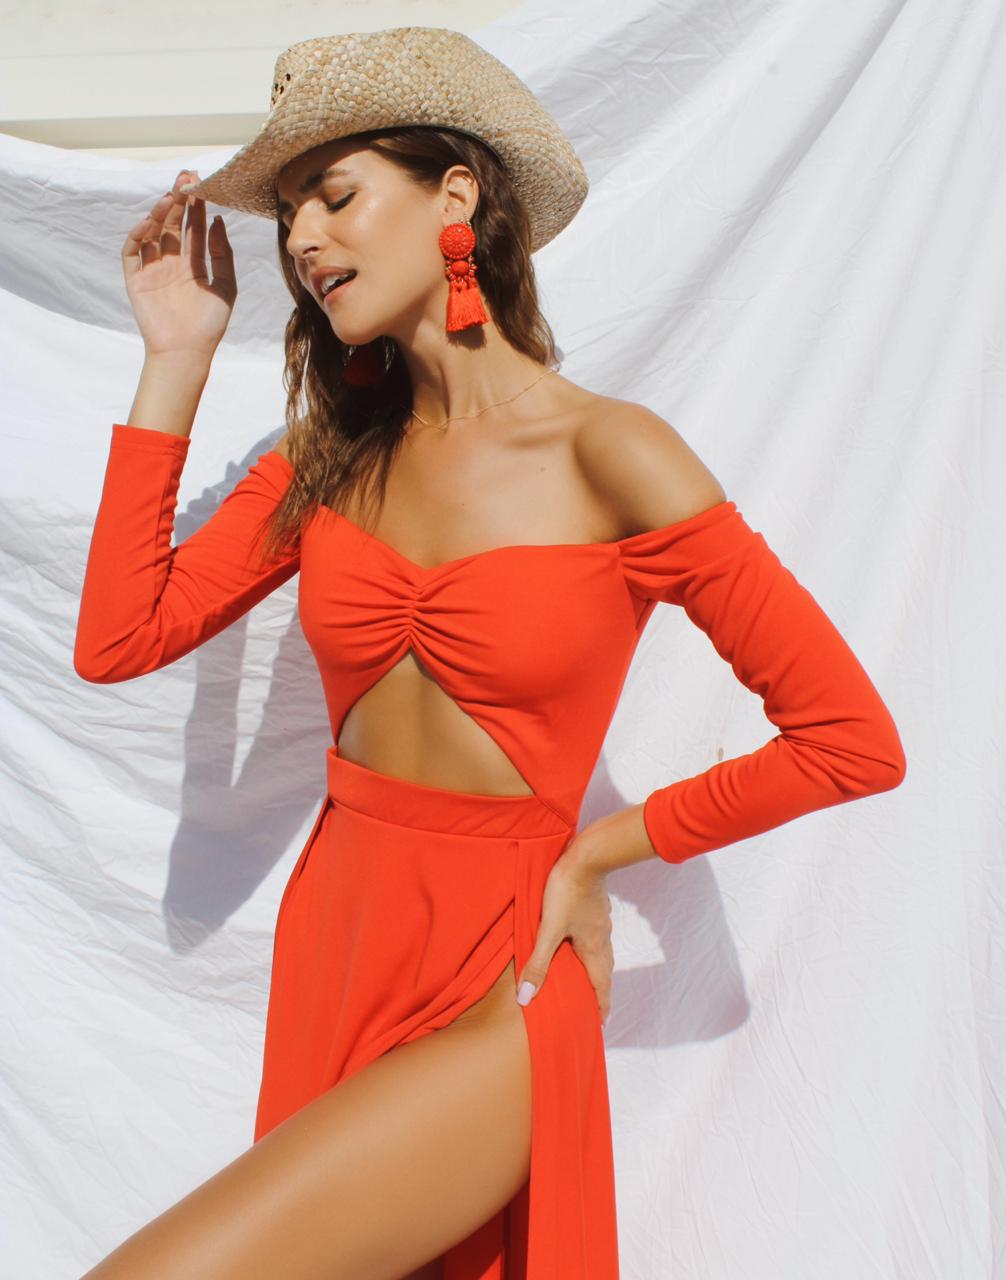 Balistarz-model-Julie-Rose-portrait-shoot-in-a-orange-fancy-outfit-with-a-hat